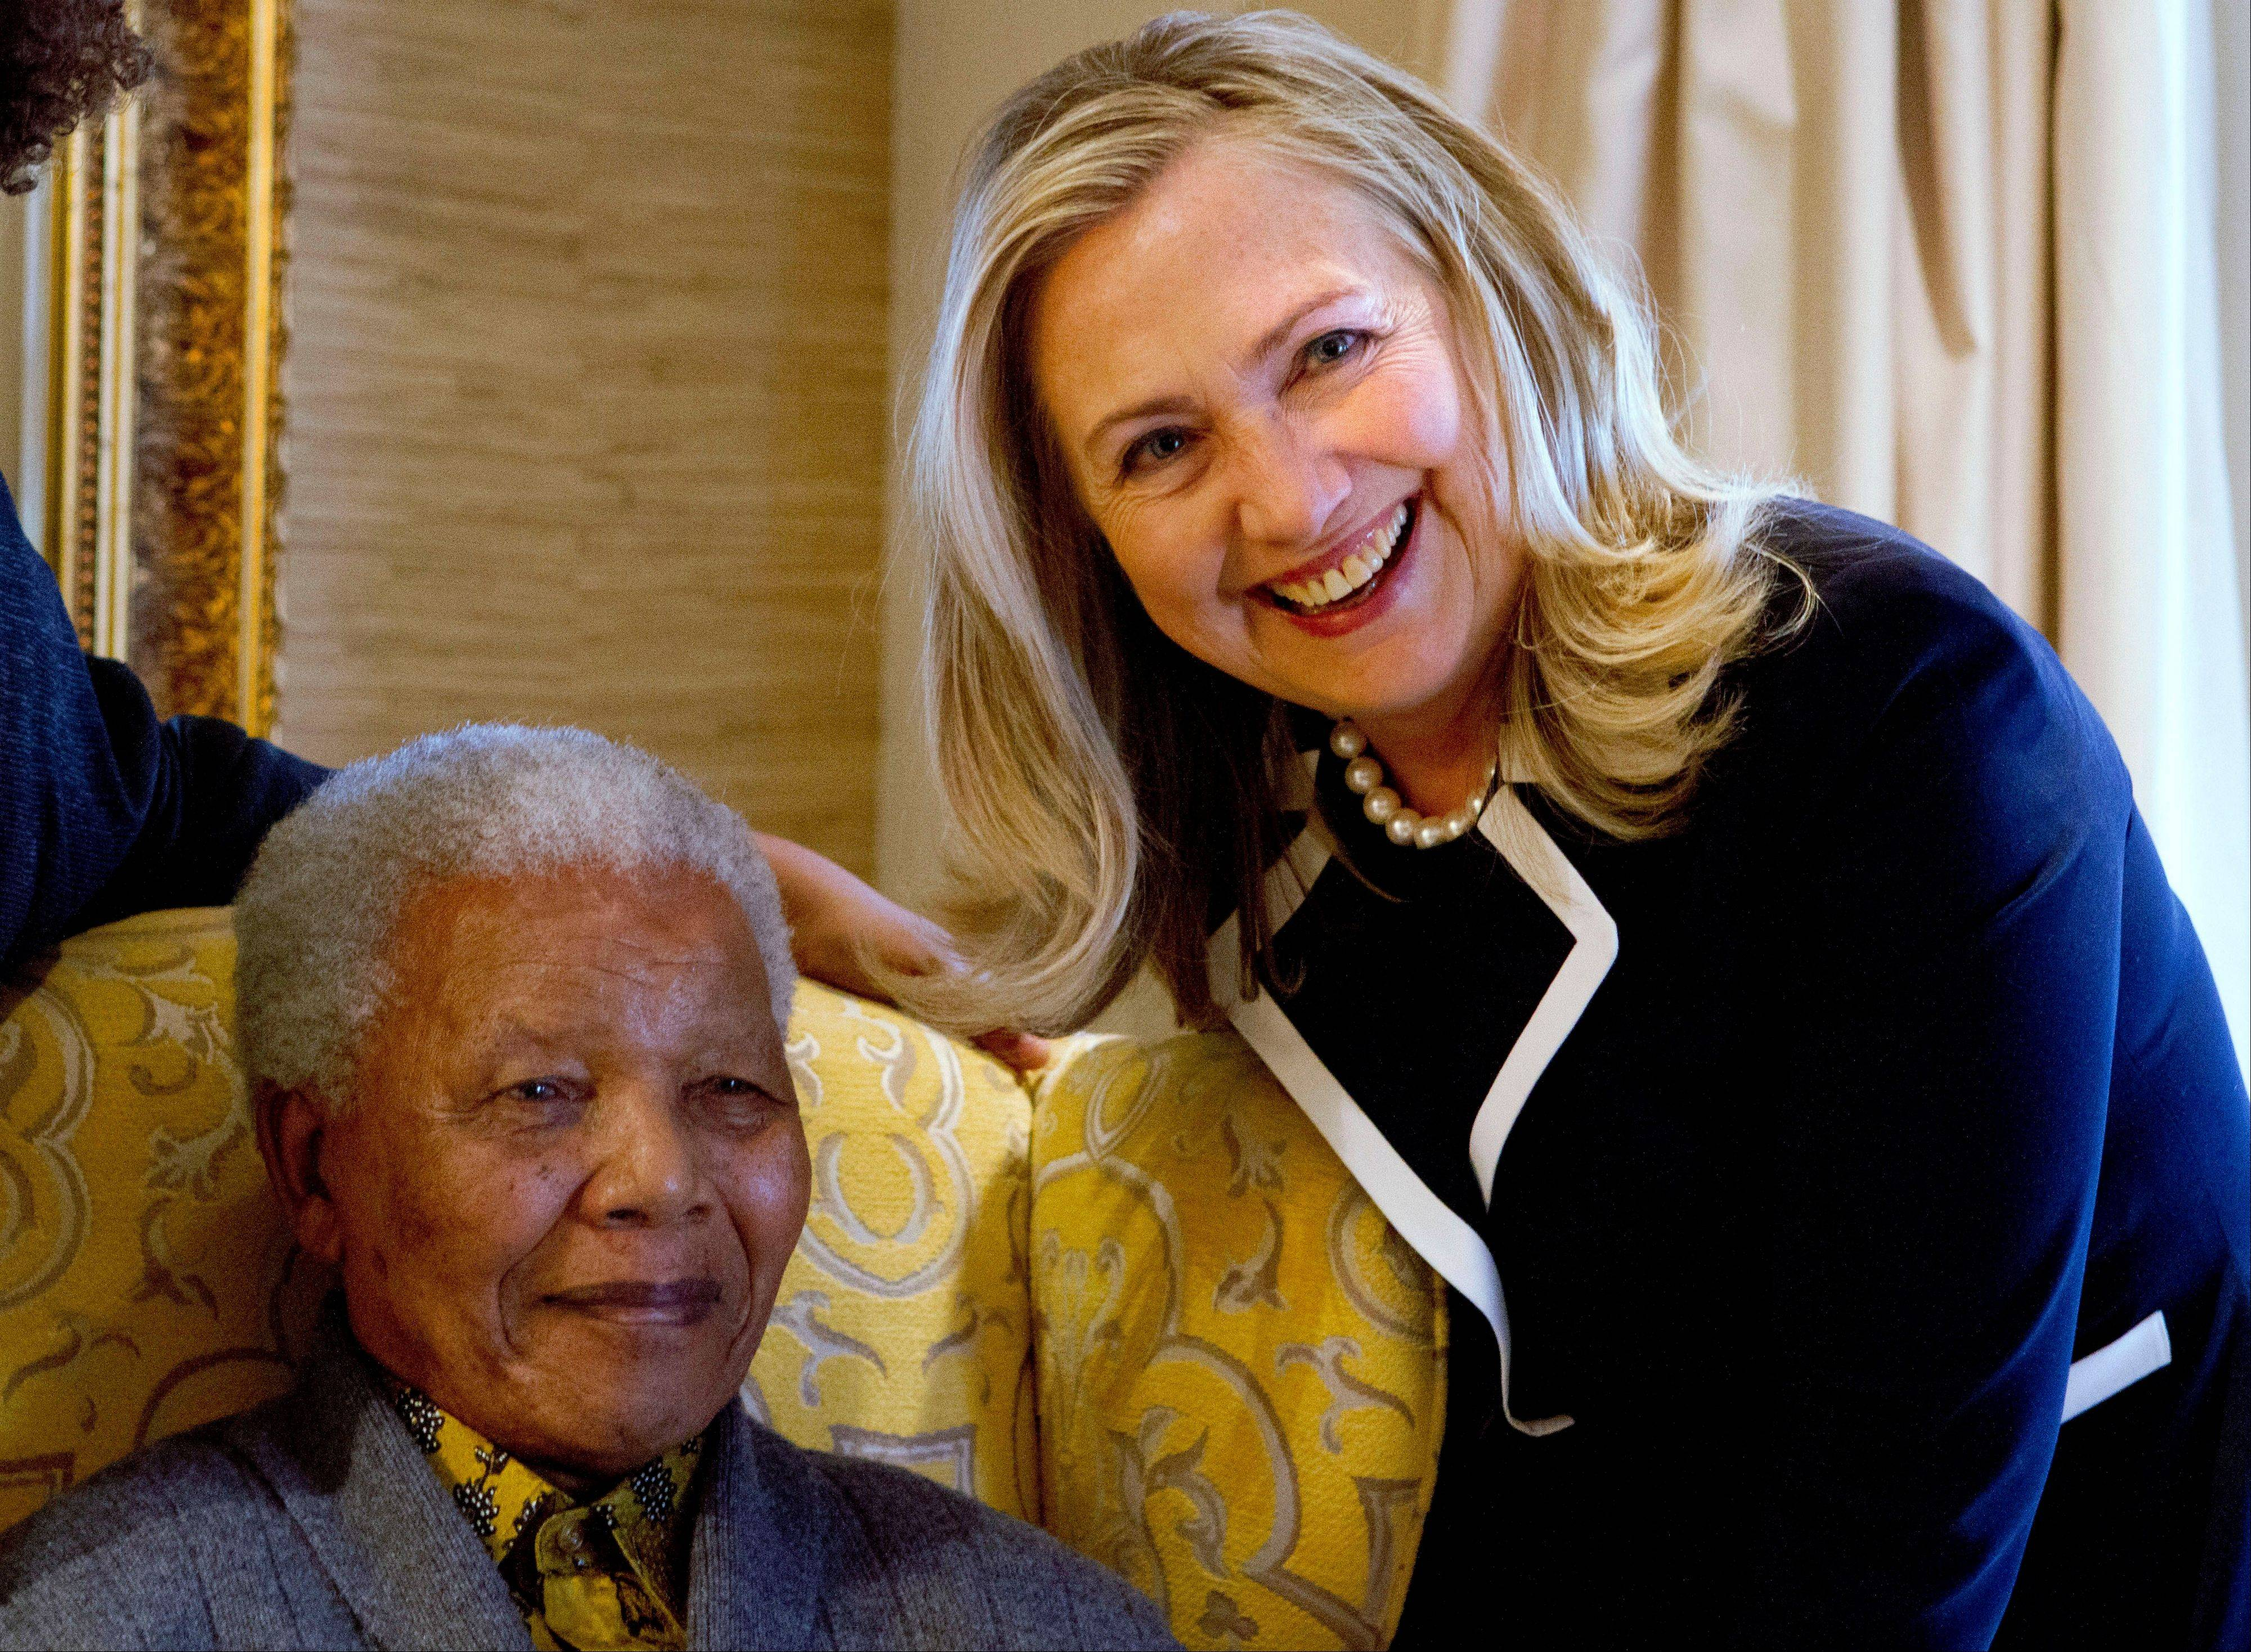 In this Aug. 6, 2012 file photo, U.S. Secretary of State Hillary Rodham Clinton, right, meets with former South Africa President Nelson Mandela, 94, at his home in Qunu, South Africa. There may be no living figure so revered as Mandela around the world as a symbol of sacrifice and reconciliation, his legacy forged in the fight against apartheid, the system of white minority rule that imprisoned him for 27 years.